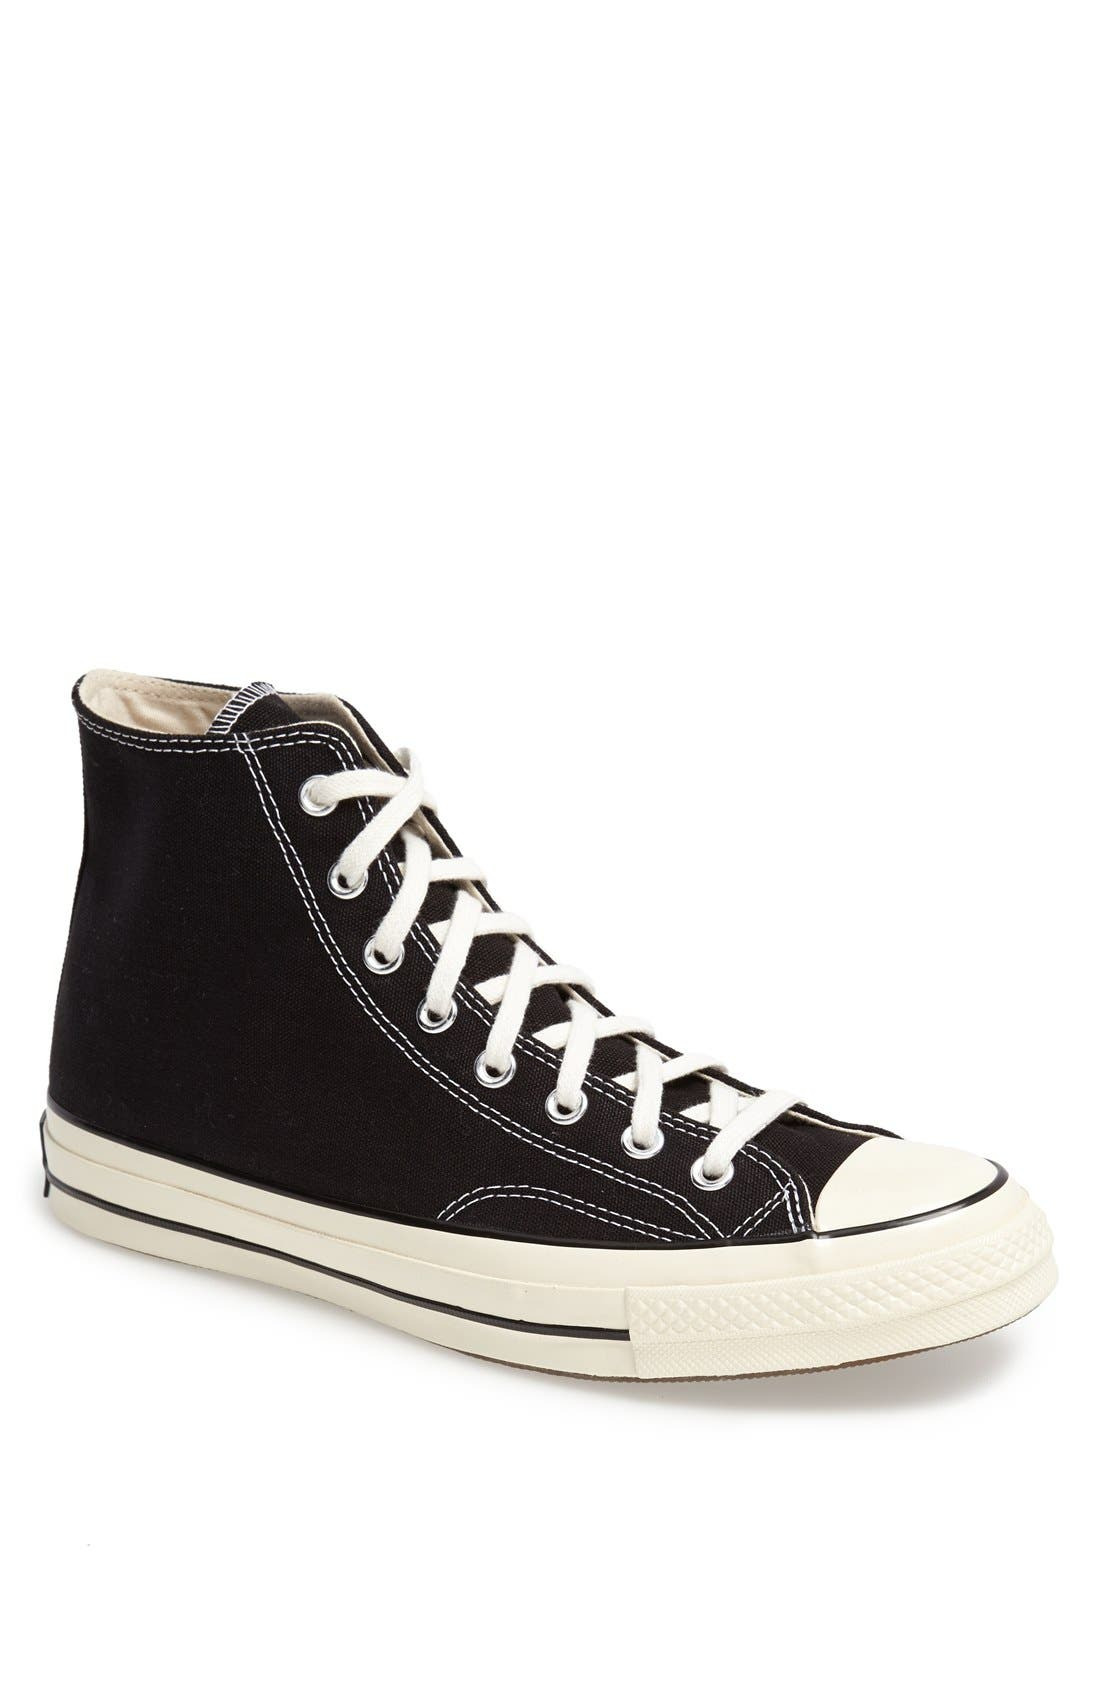 Chuck Taylor<sup>®</sup> All Star<sup>®</sup> '70 High Sneaker,                         Main,                         color, Black